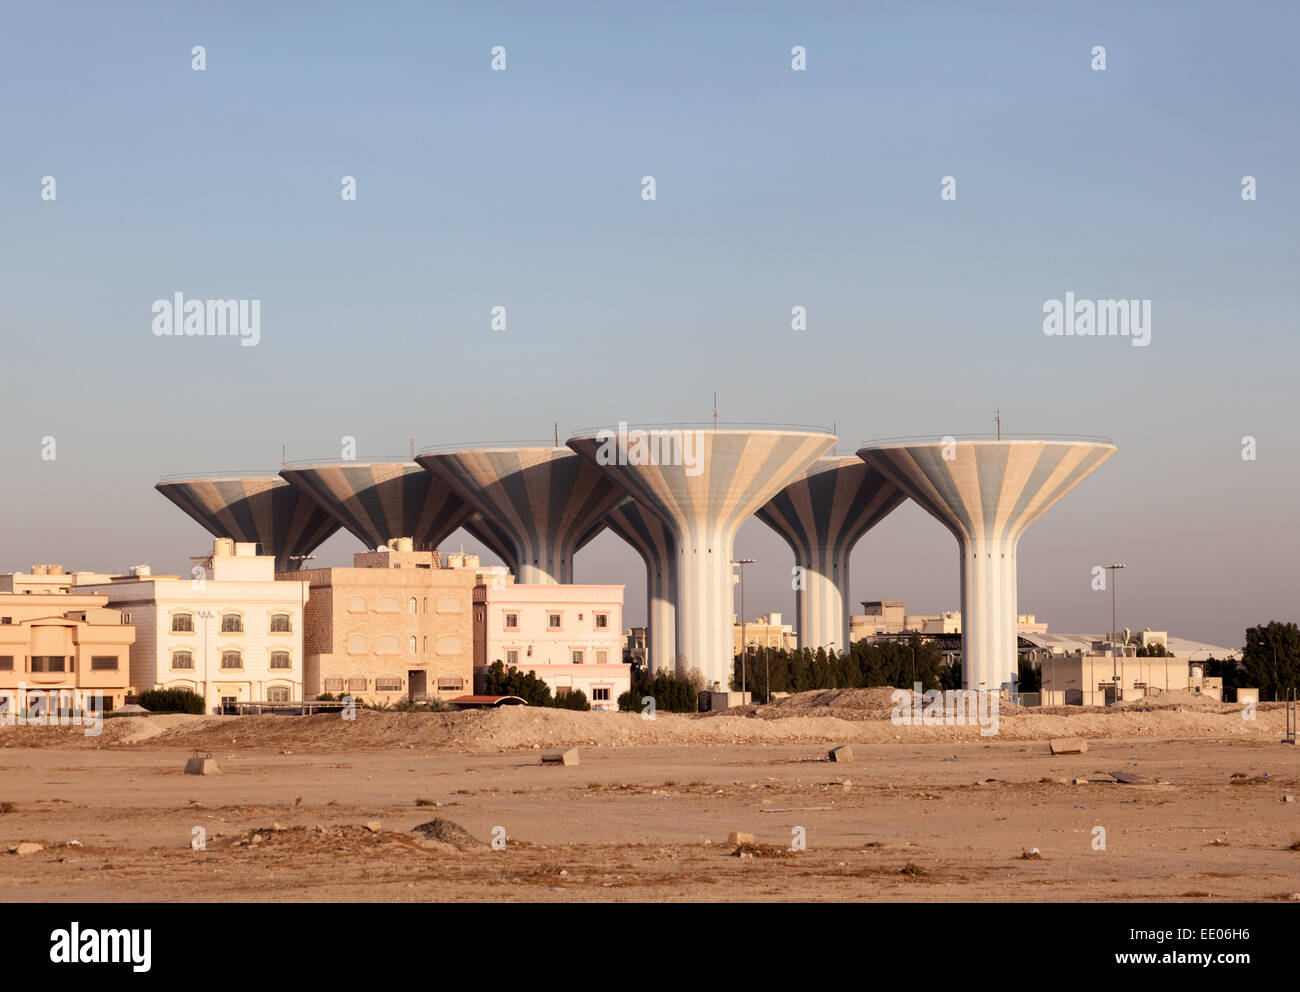 Water towers in Kuwait - Stock Image